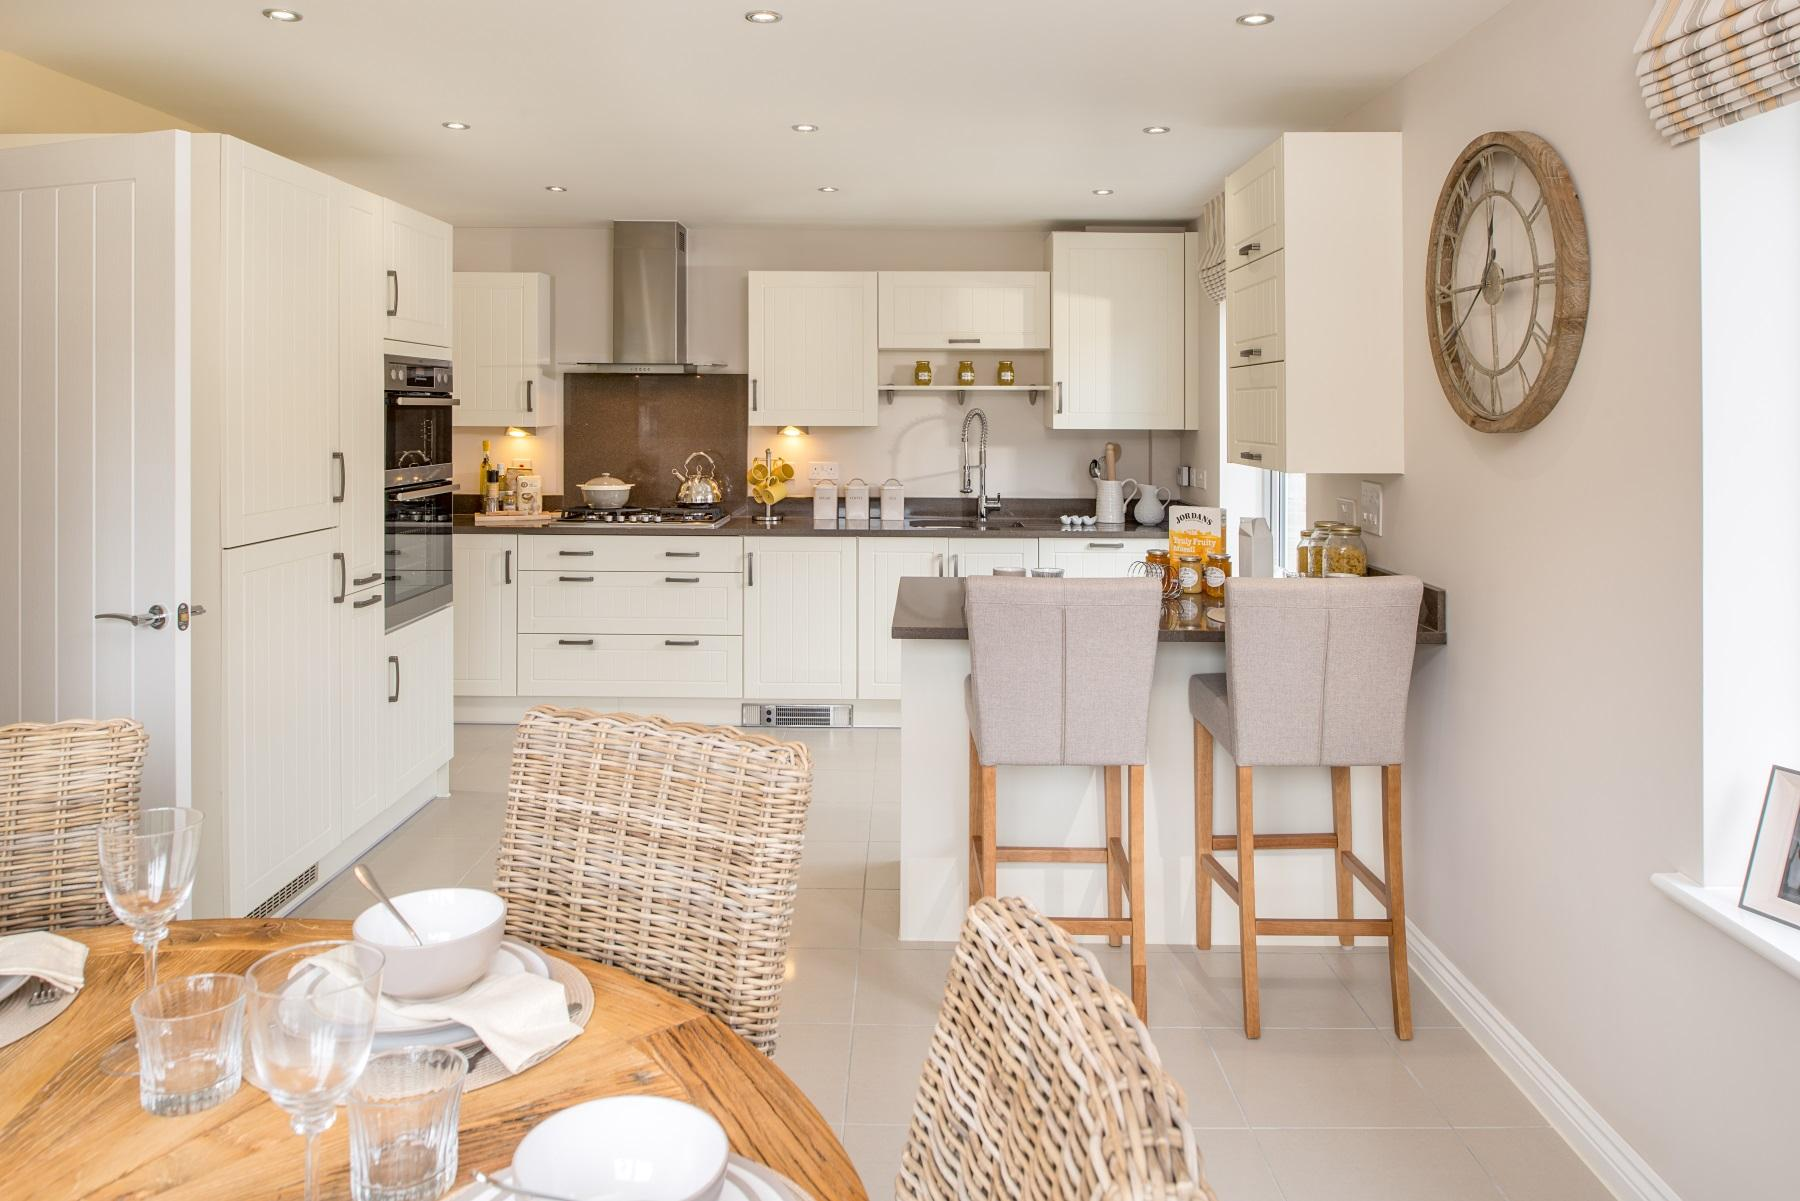 TW Exeter - Mayfield Gardens - Trusdale example kitchen 2